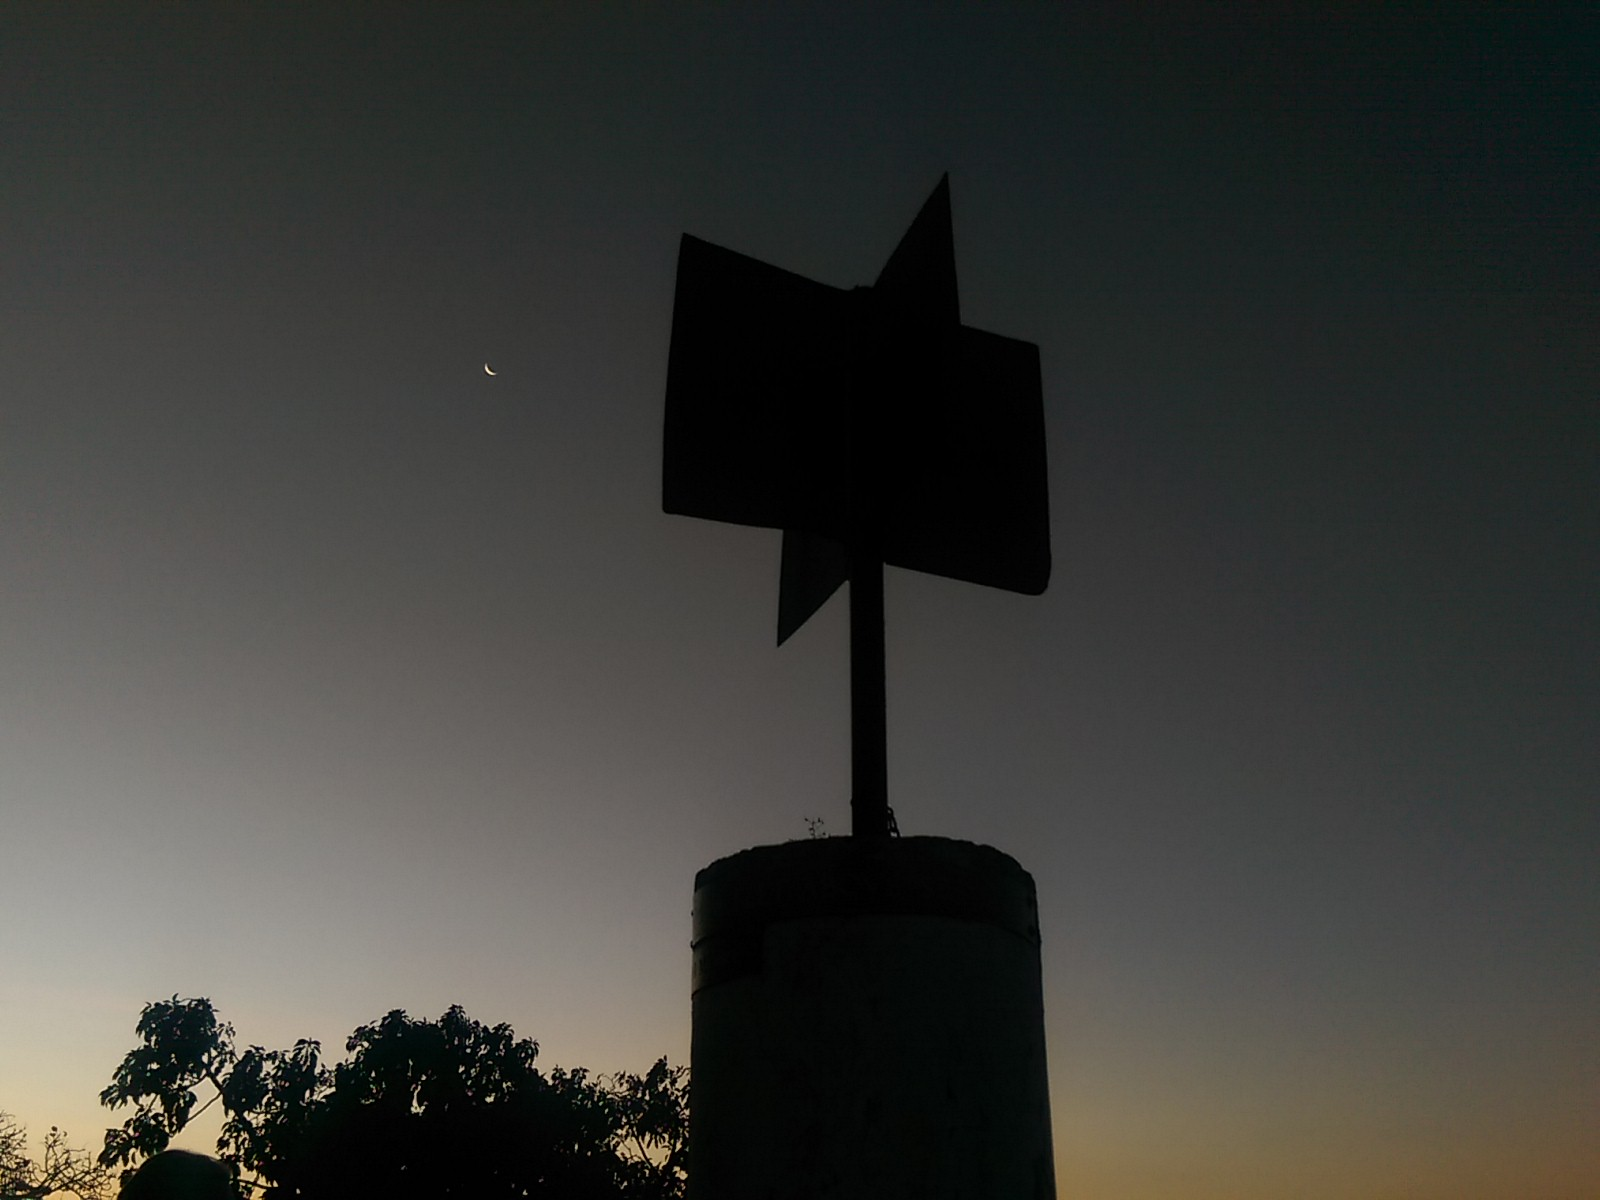 A 4-way sign post silhouetted against a post-sunset sky with the moon beside it